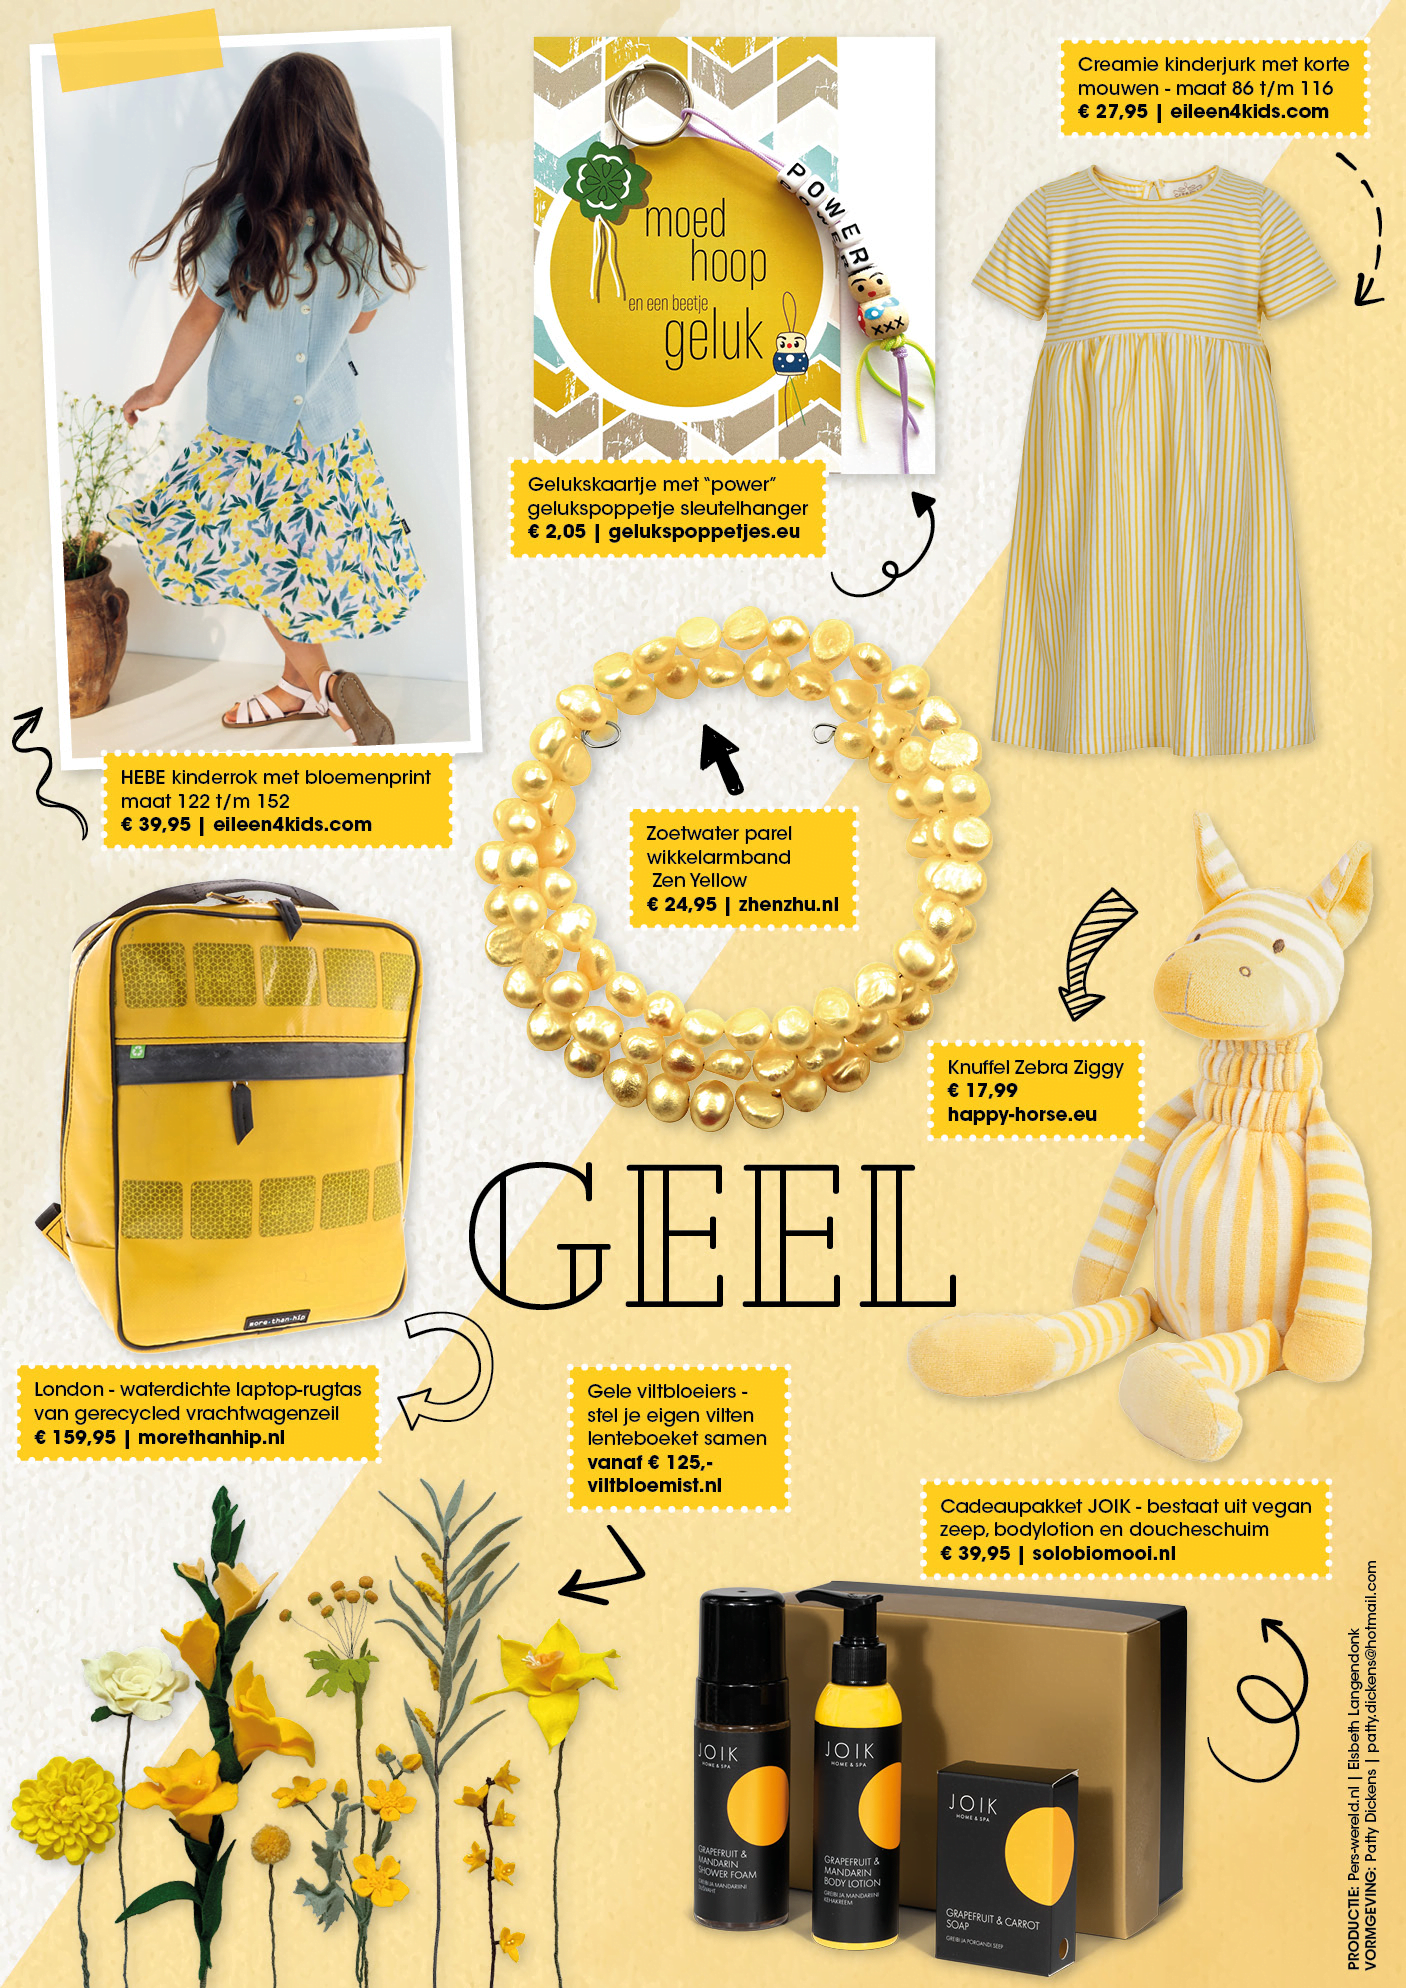 shopping-specials-geel-perswereld-2021